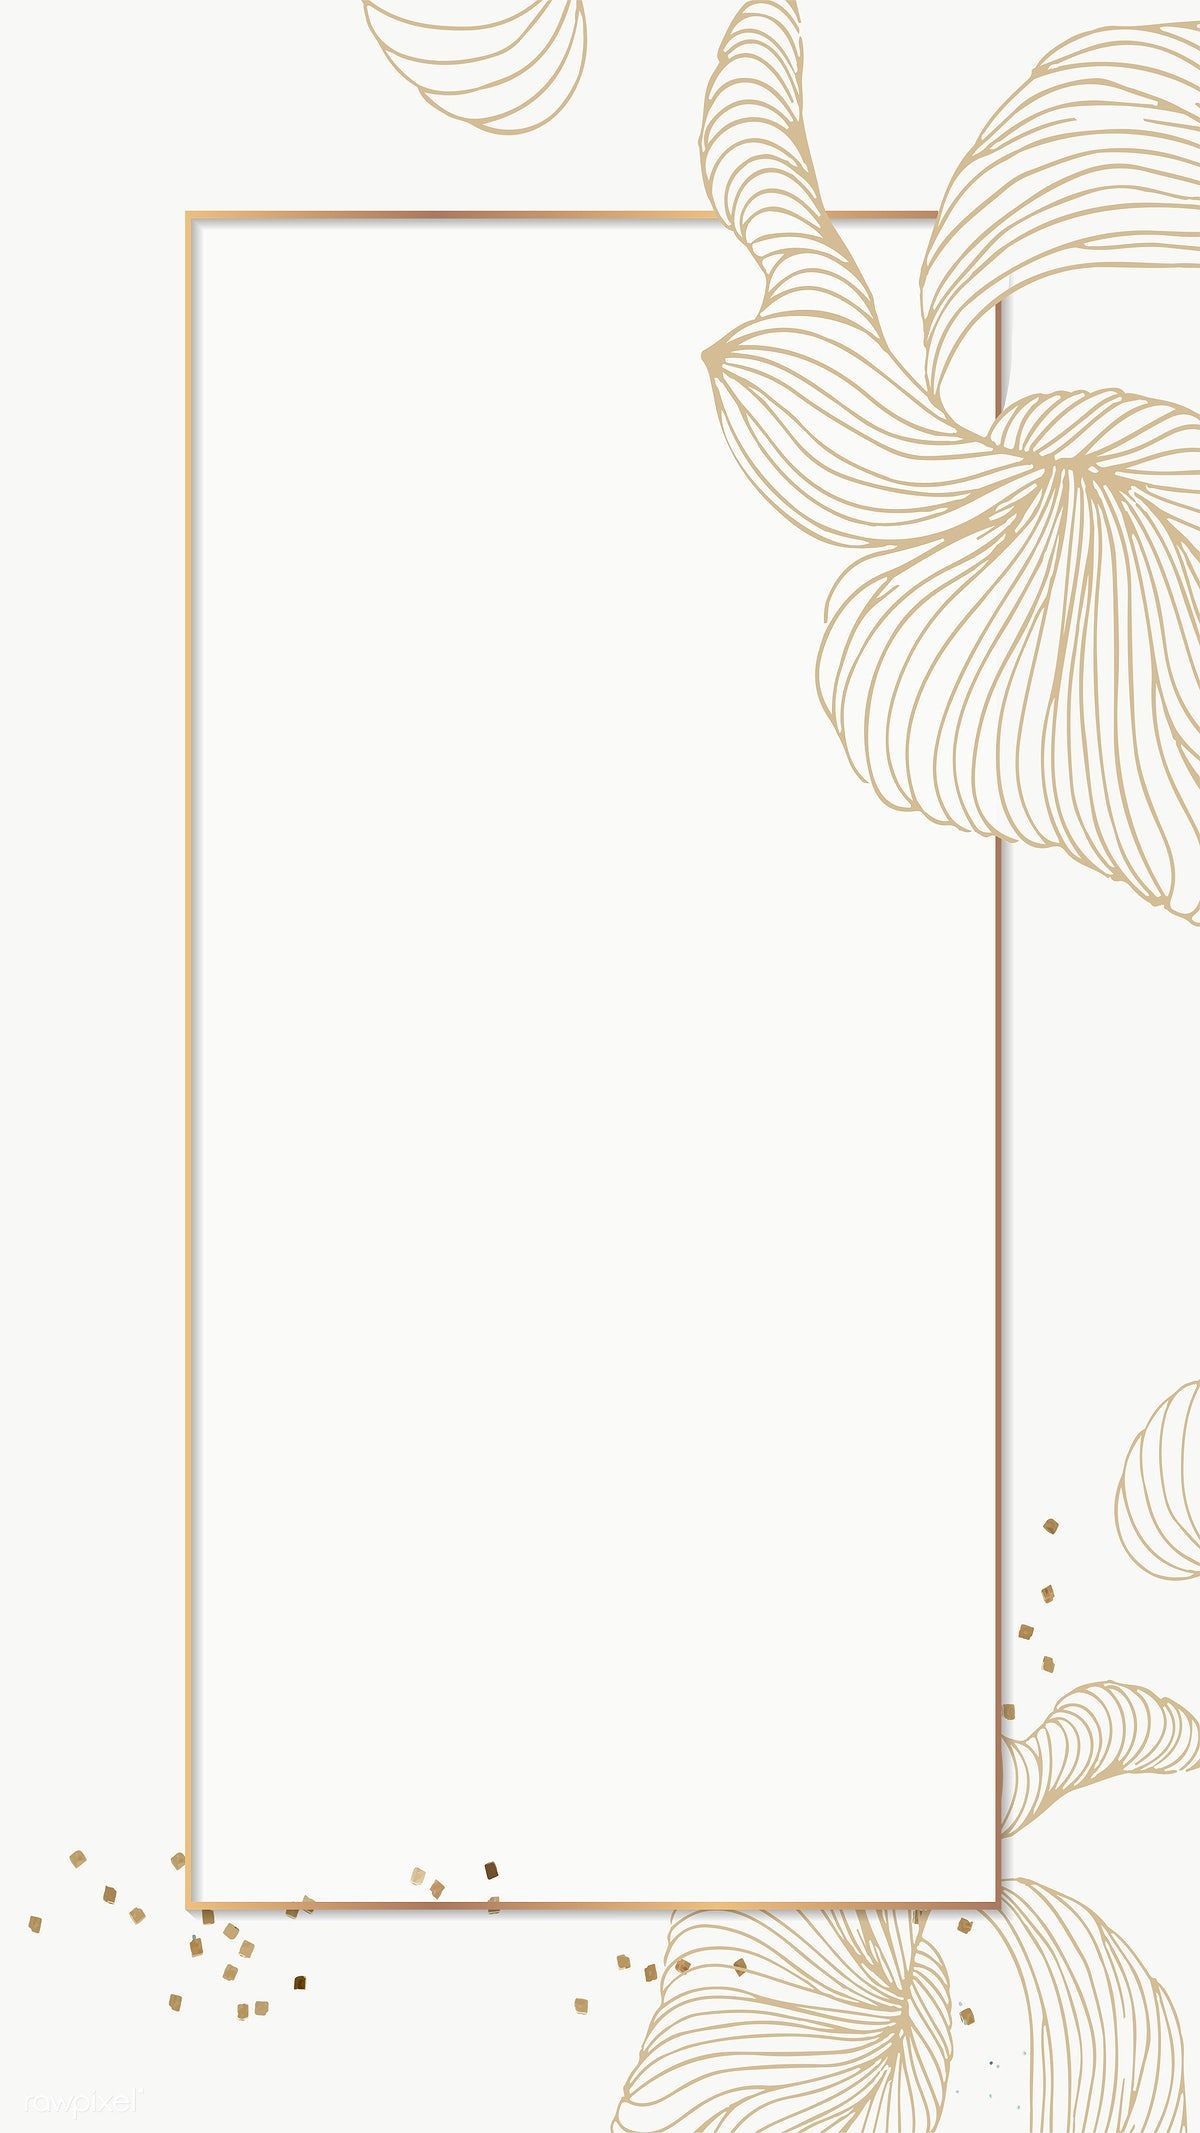 Golden Floral Rectangle Frame Mobile Phone Wallpaper Transparent Png Premium Image By Raw Phone Wallpaper Design Flower Background Wallpaper Framed Wallpaper